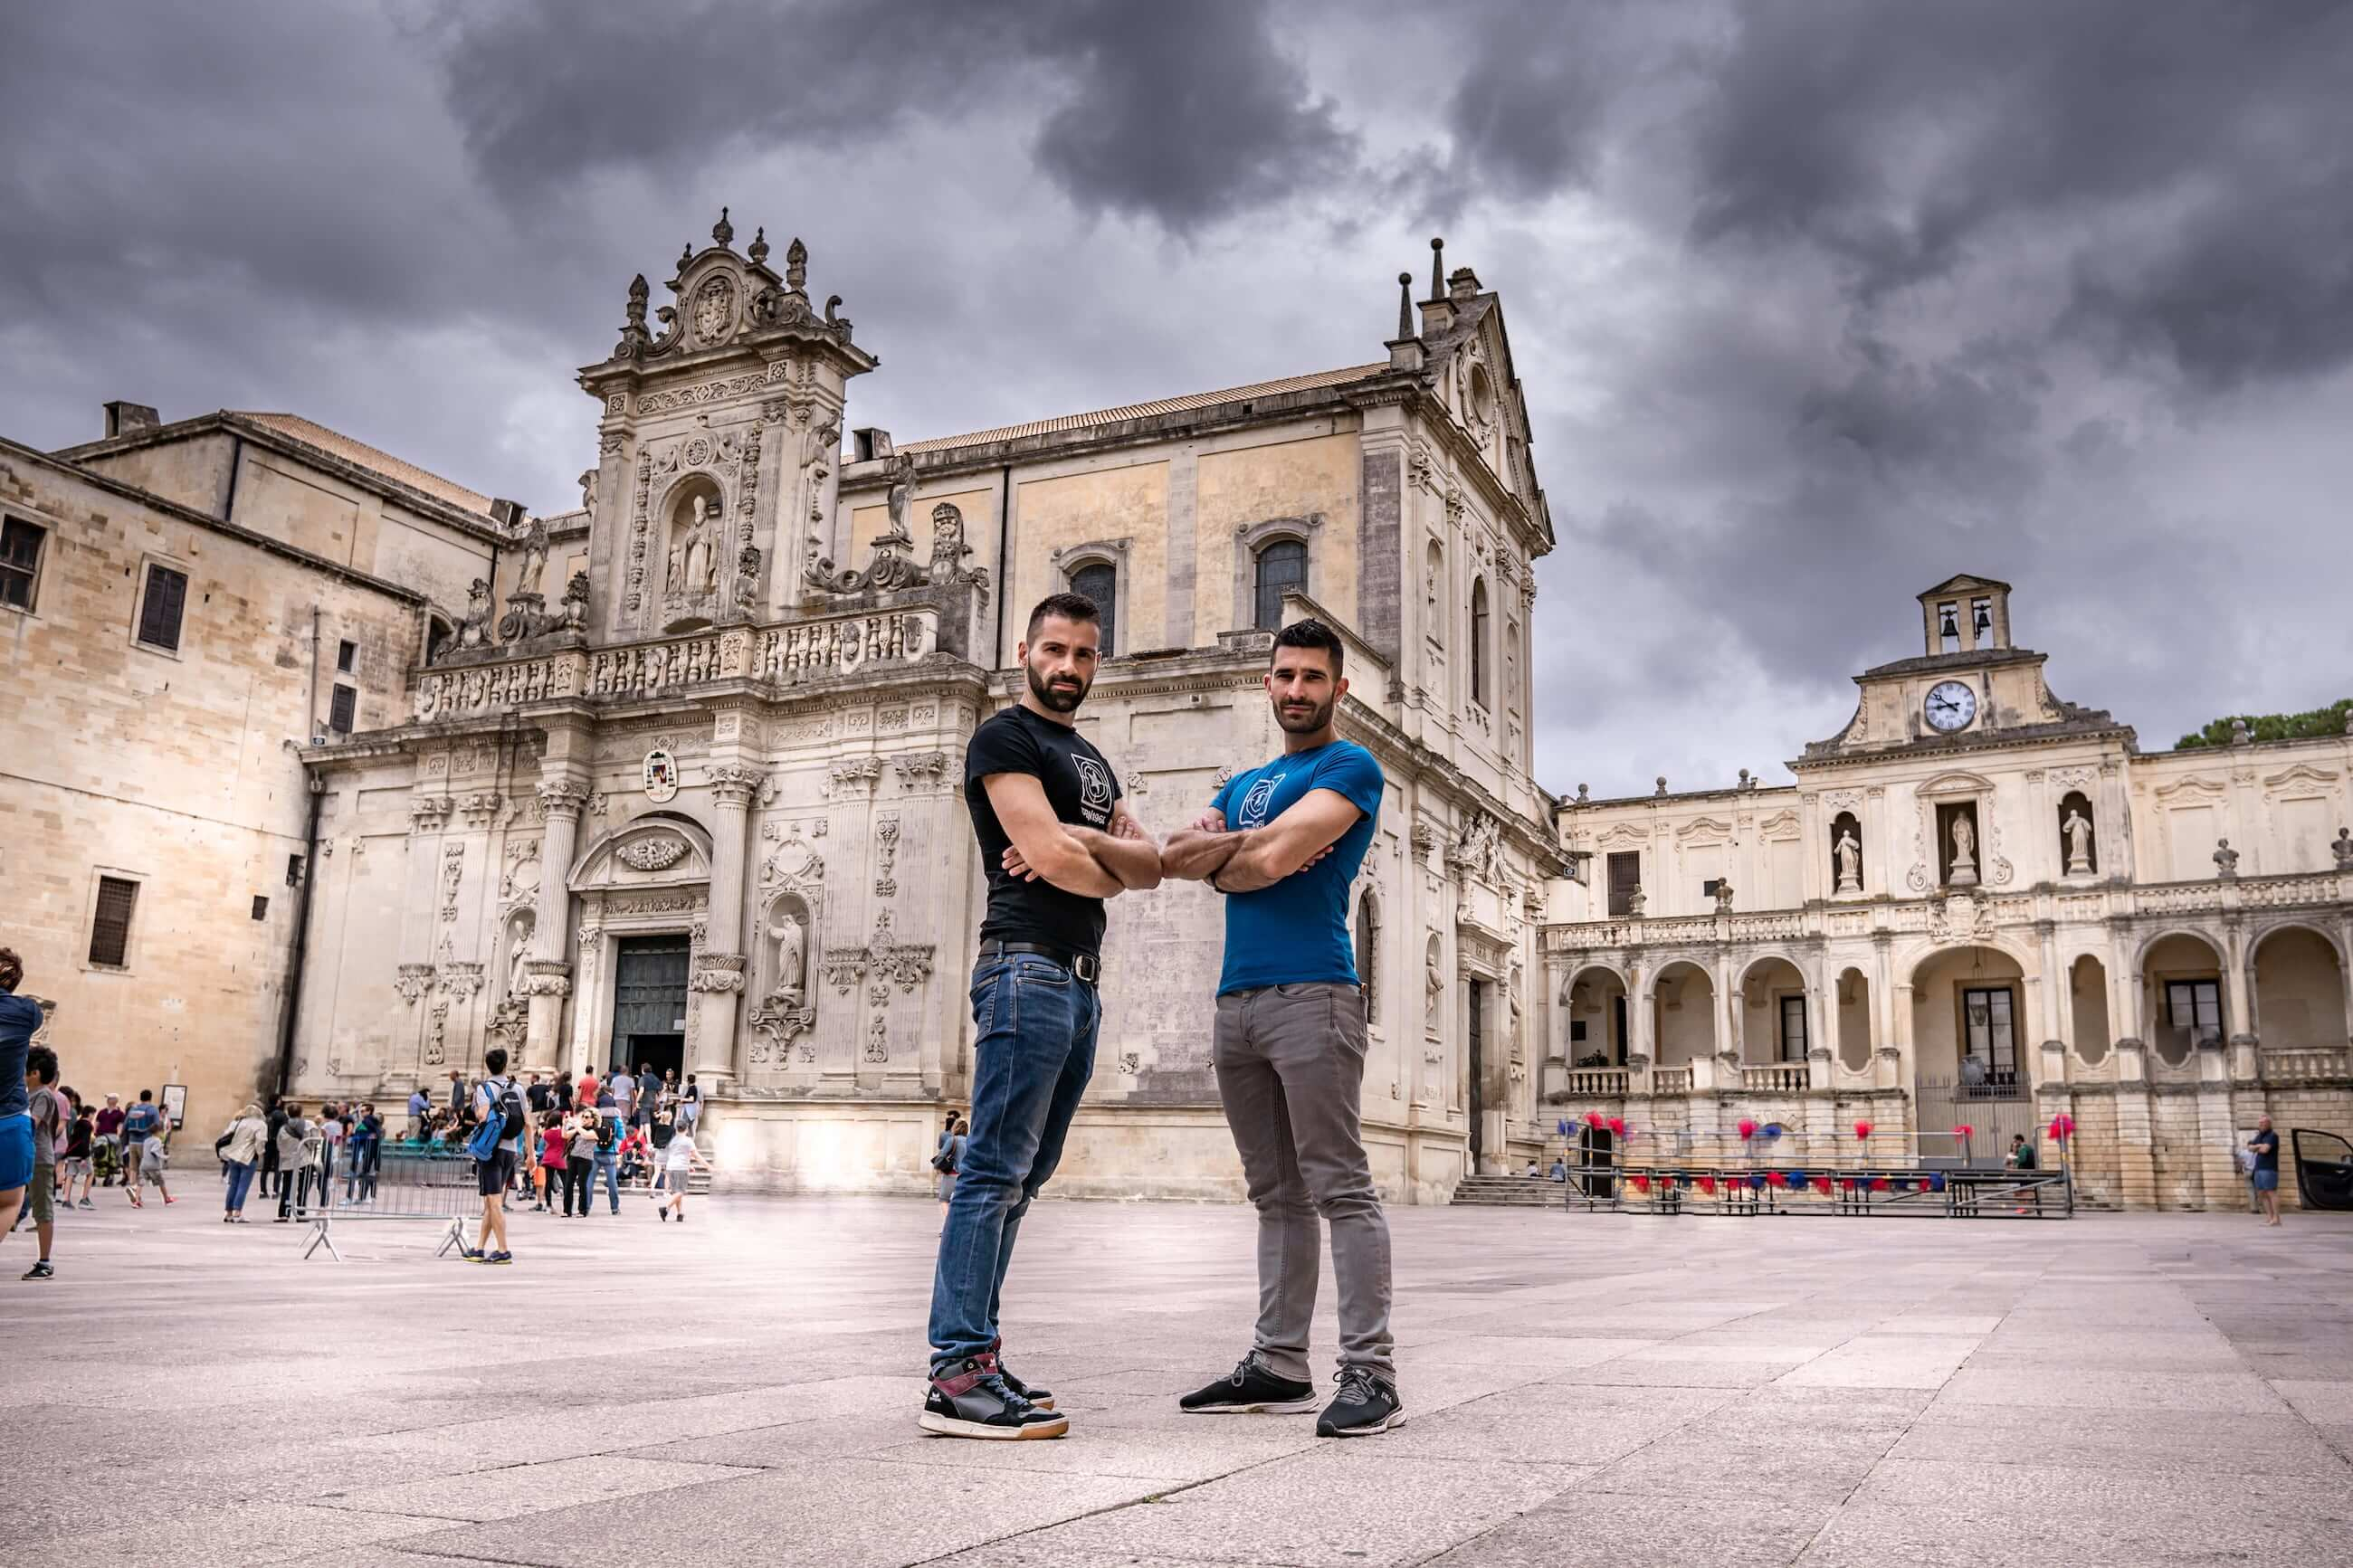 A Photo of Puglia Lecce Piazza Duomo Italy and budget travel tips for your Europe Bucket List